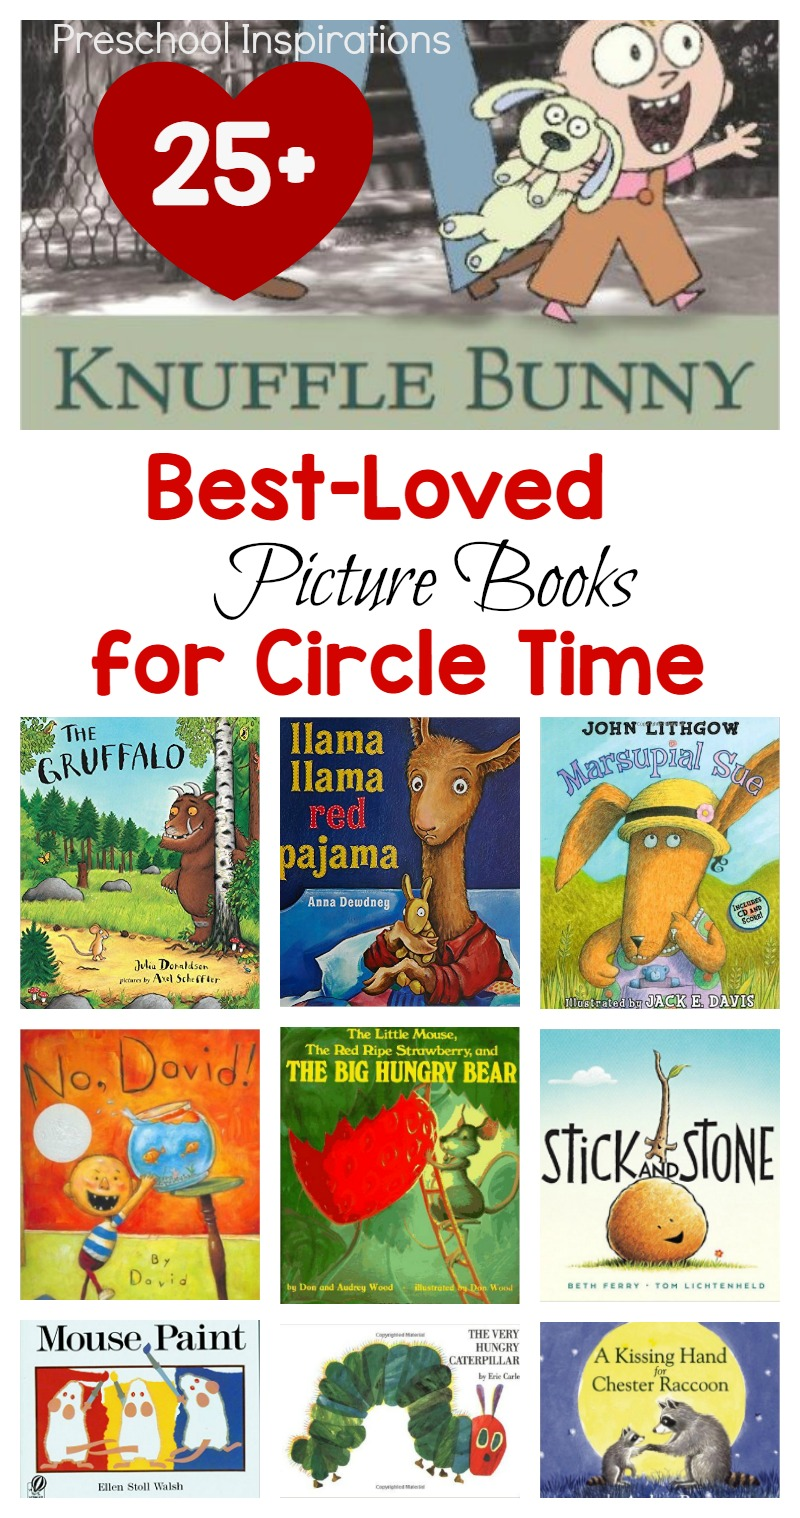 Need the perfect book for a read aloud? Here are 25+ of the most popular children's books that are best loved for circle time. Kindergarteners, preschoolers, toddlers, and children of all ages love hearing these best loved picture books. #prek #preschool #kindergarten #booksforkids #readaloud #circletime #circletimebooks #picturebooks